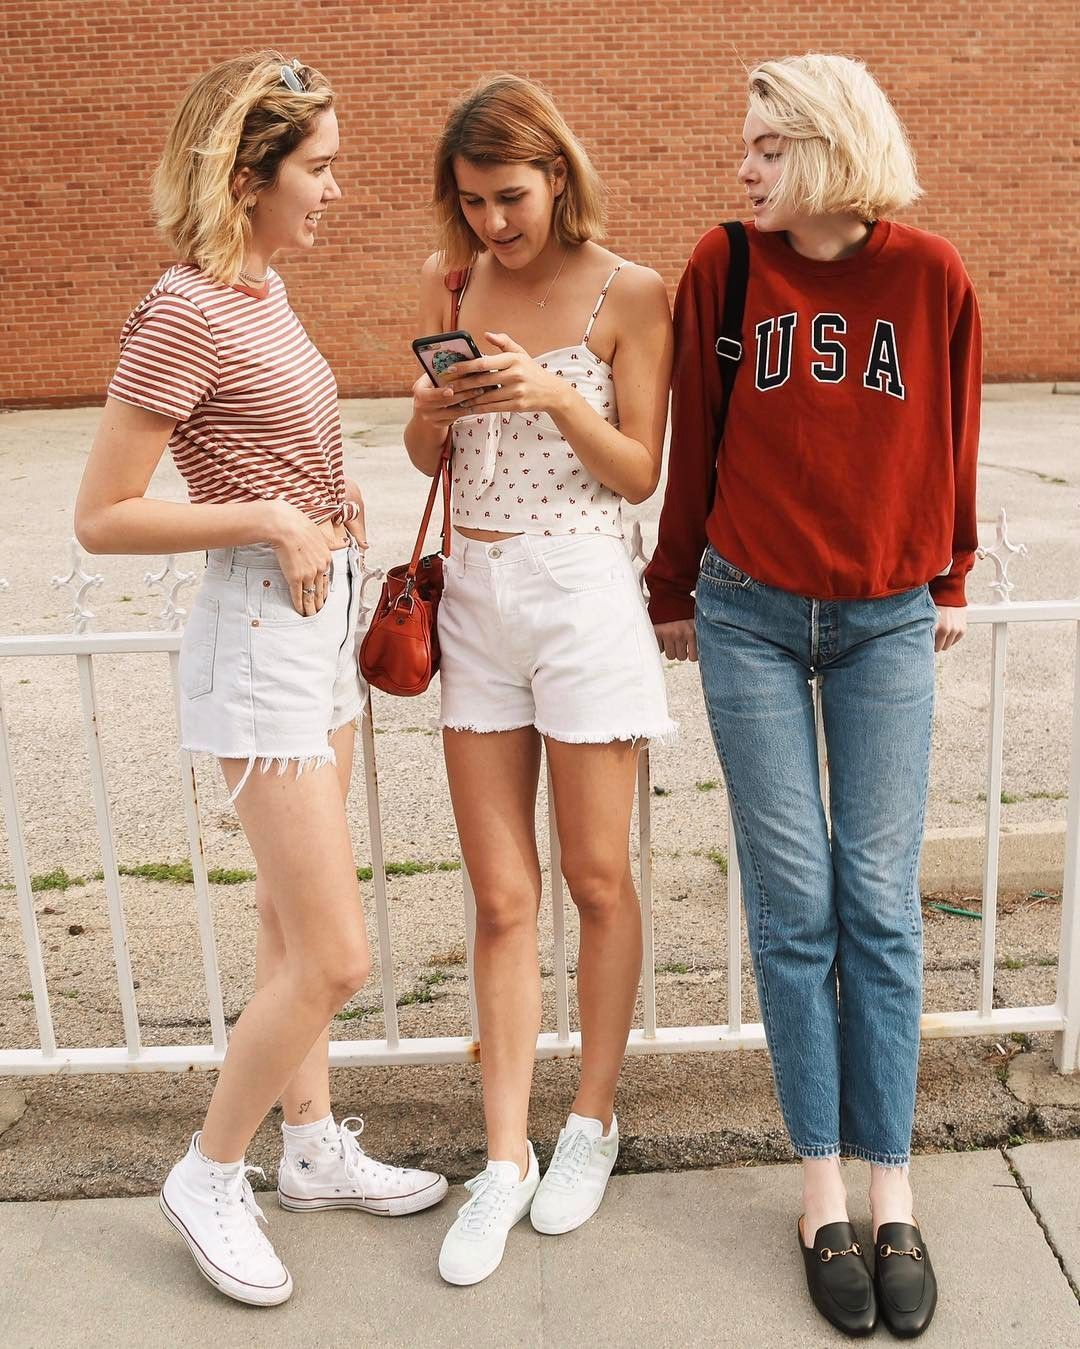 Brandy Melville Outfits 13 Fashion Brandy Melville Outfits Cute Outfits